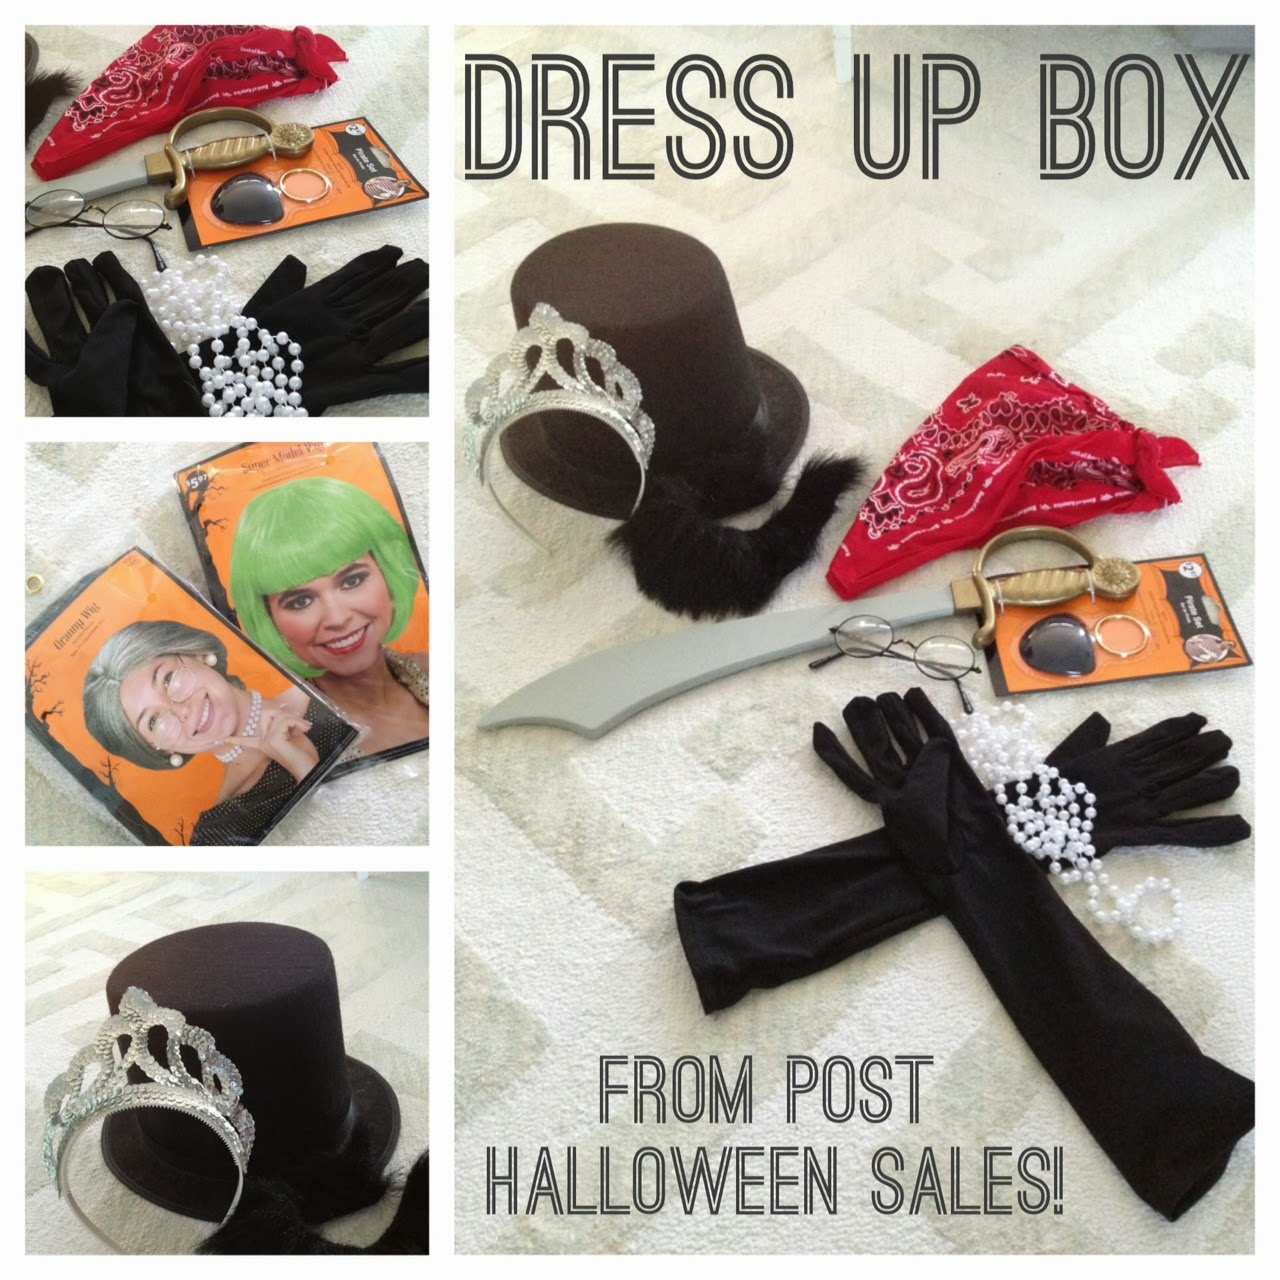 Crafty Teacher Lady February 2013: Crafty Teacher Lady: Dress Up Box: Post Halloween Sale Goodies